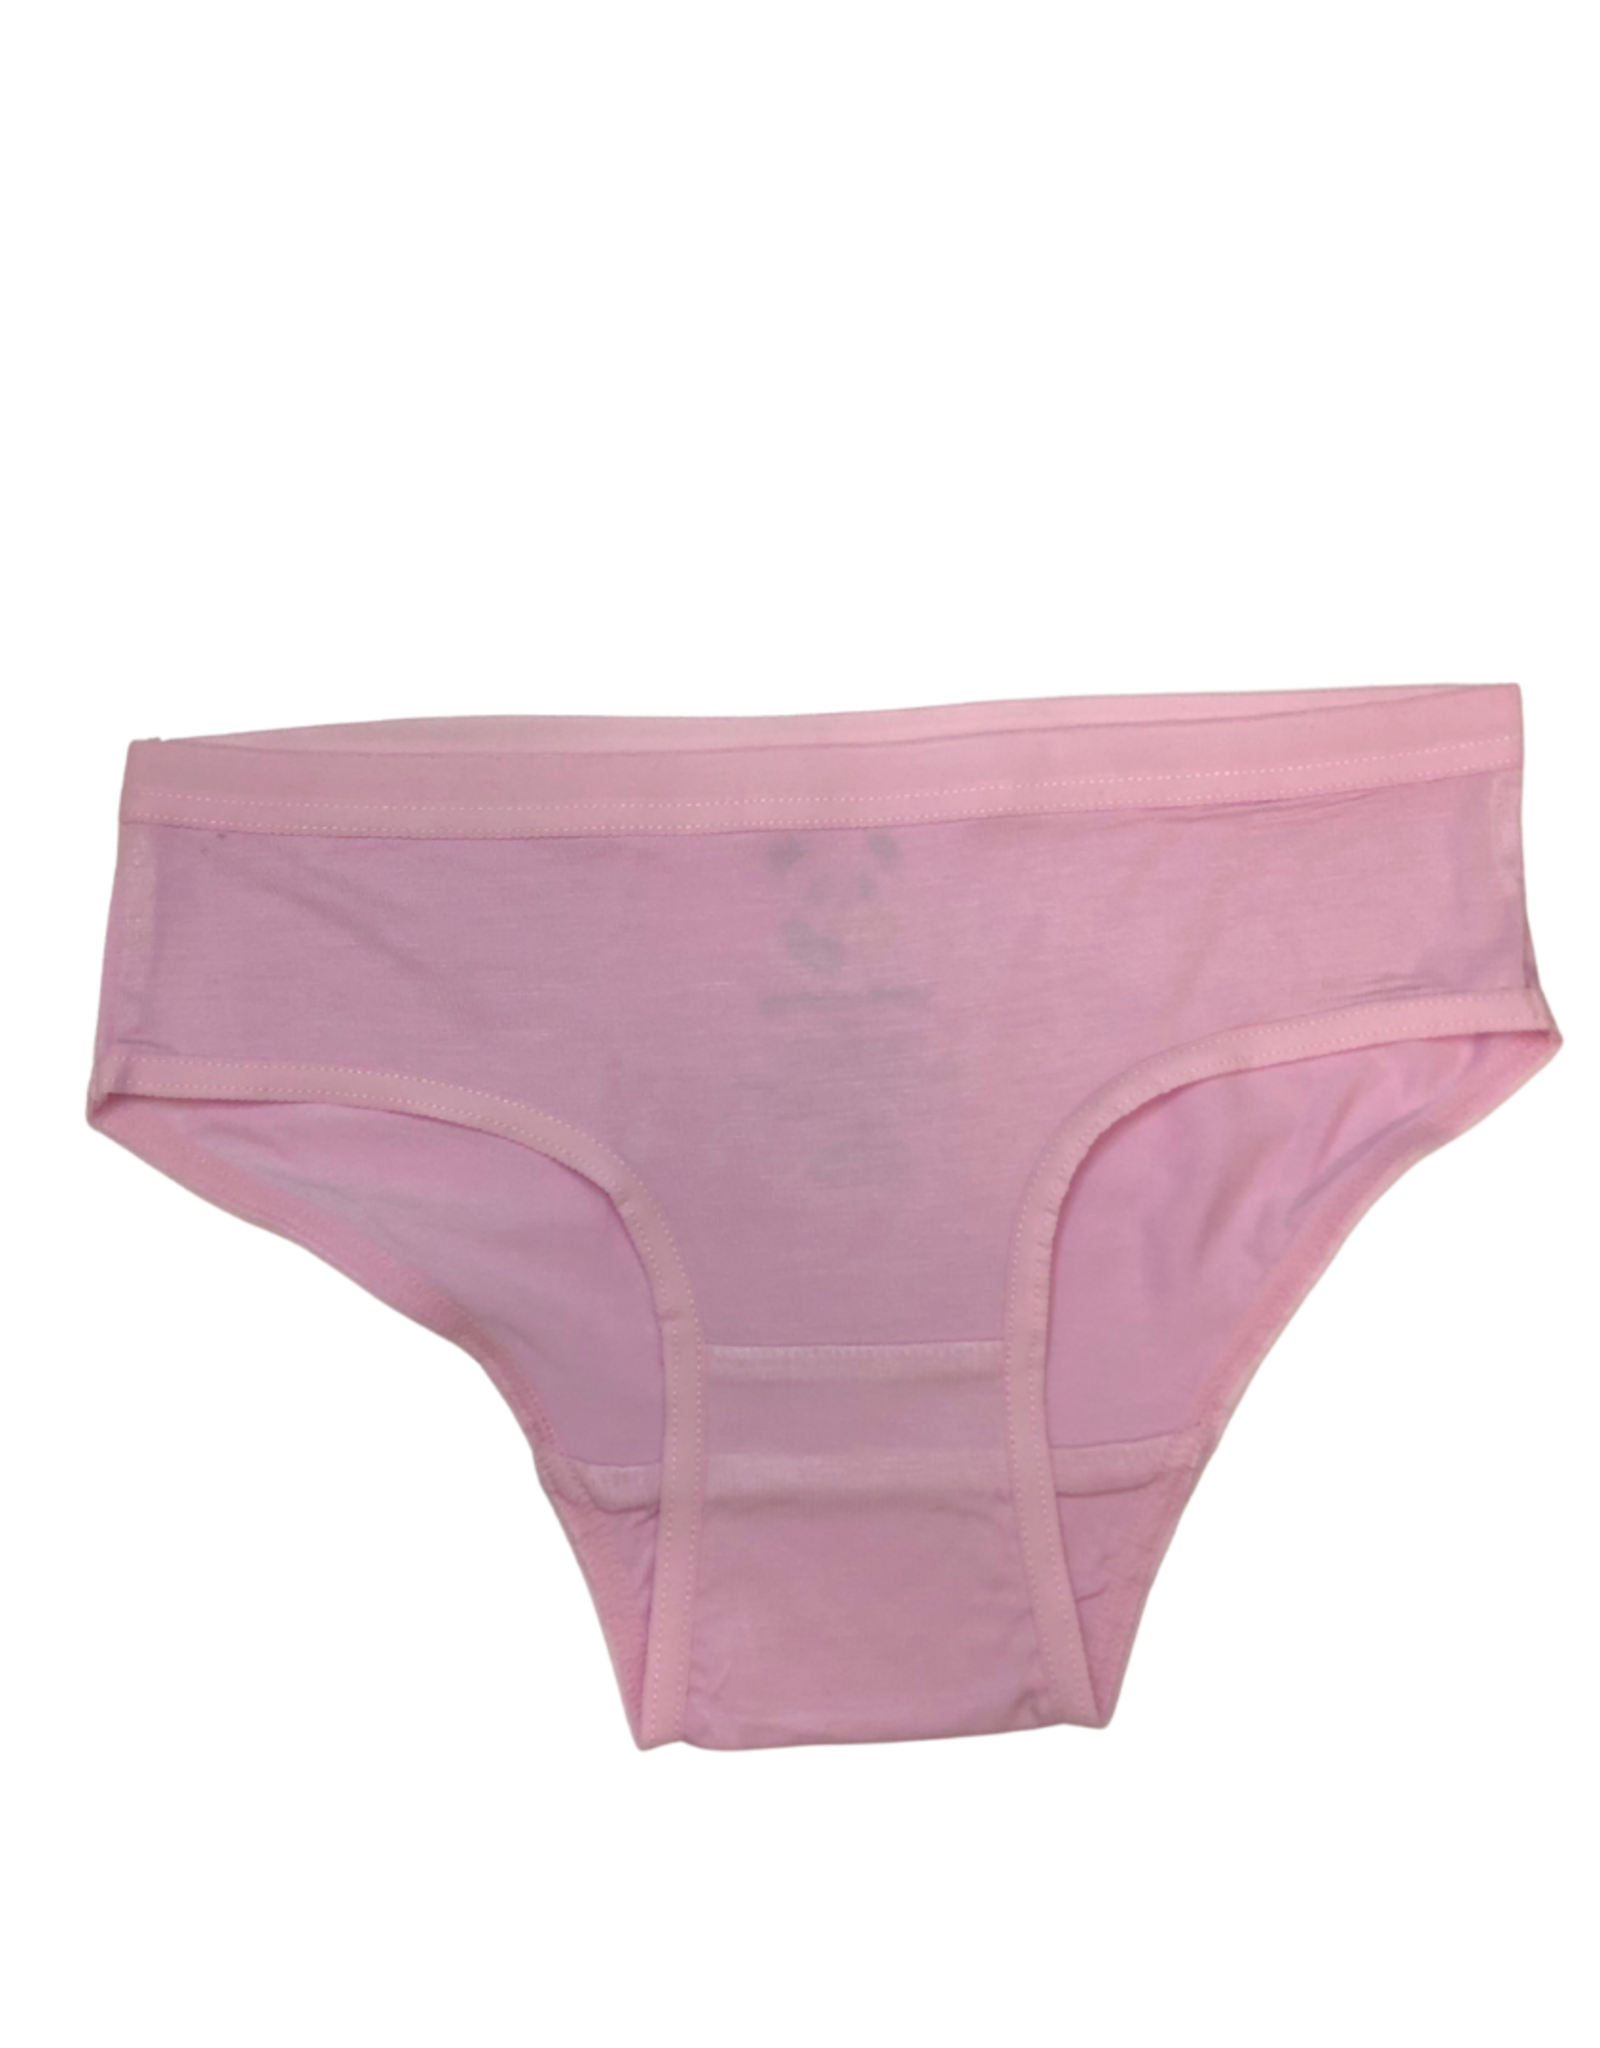 Bellabu Bear Bellabu Bear Girl's Bamboo Underwear - Pink